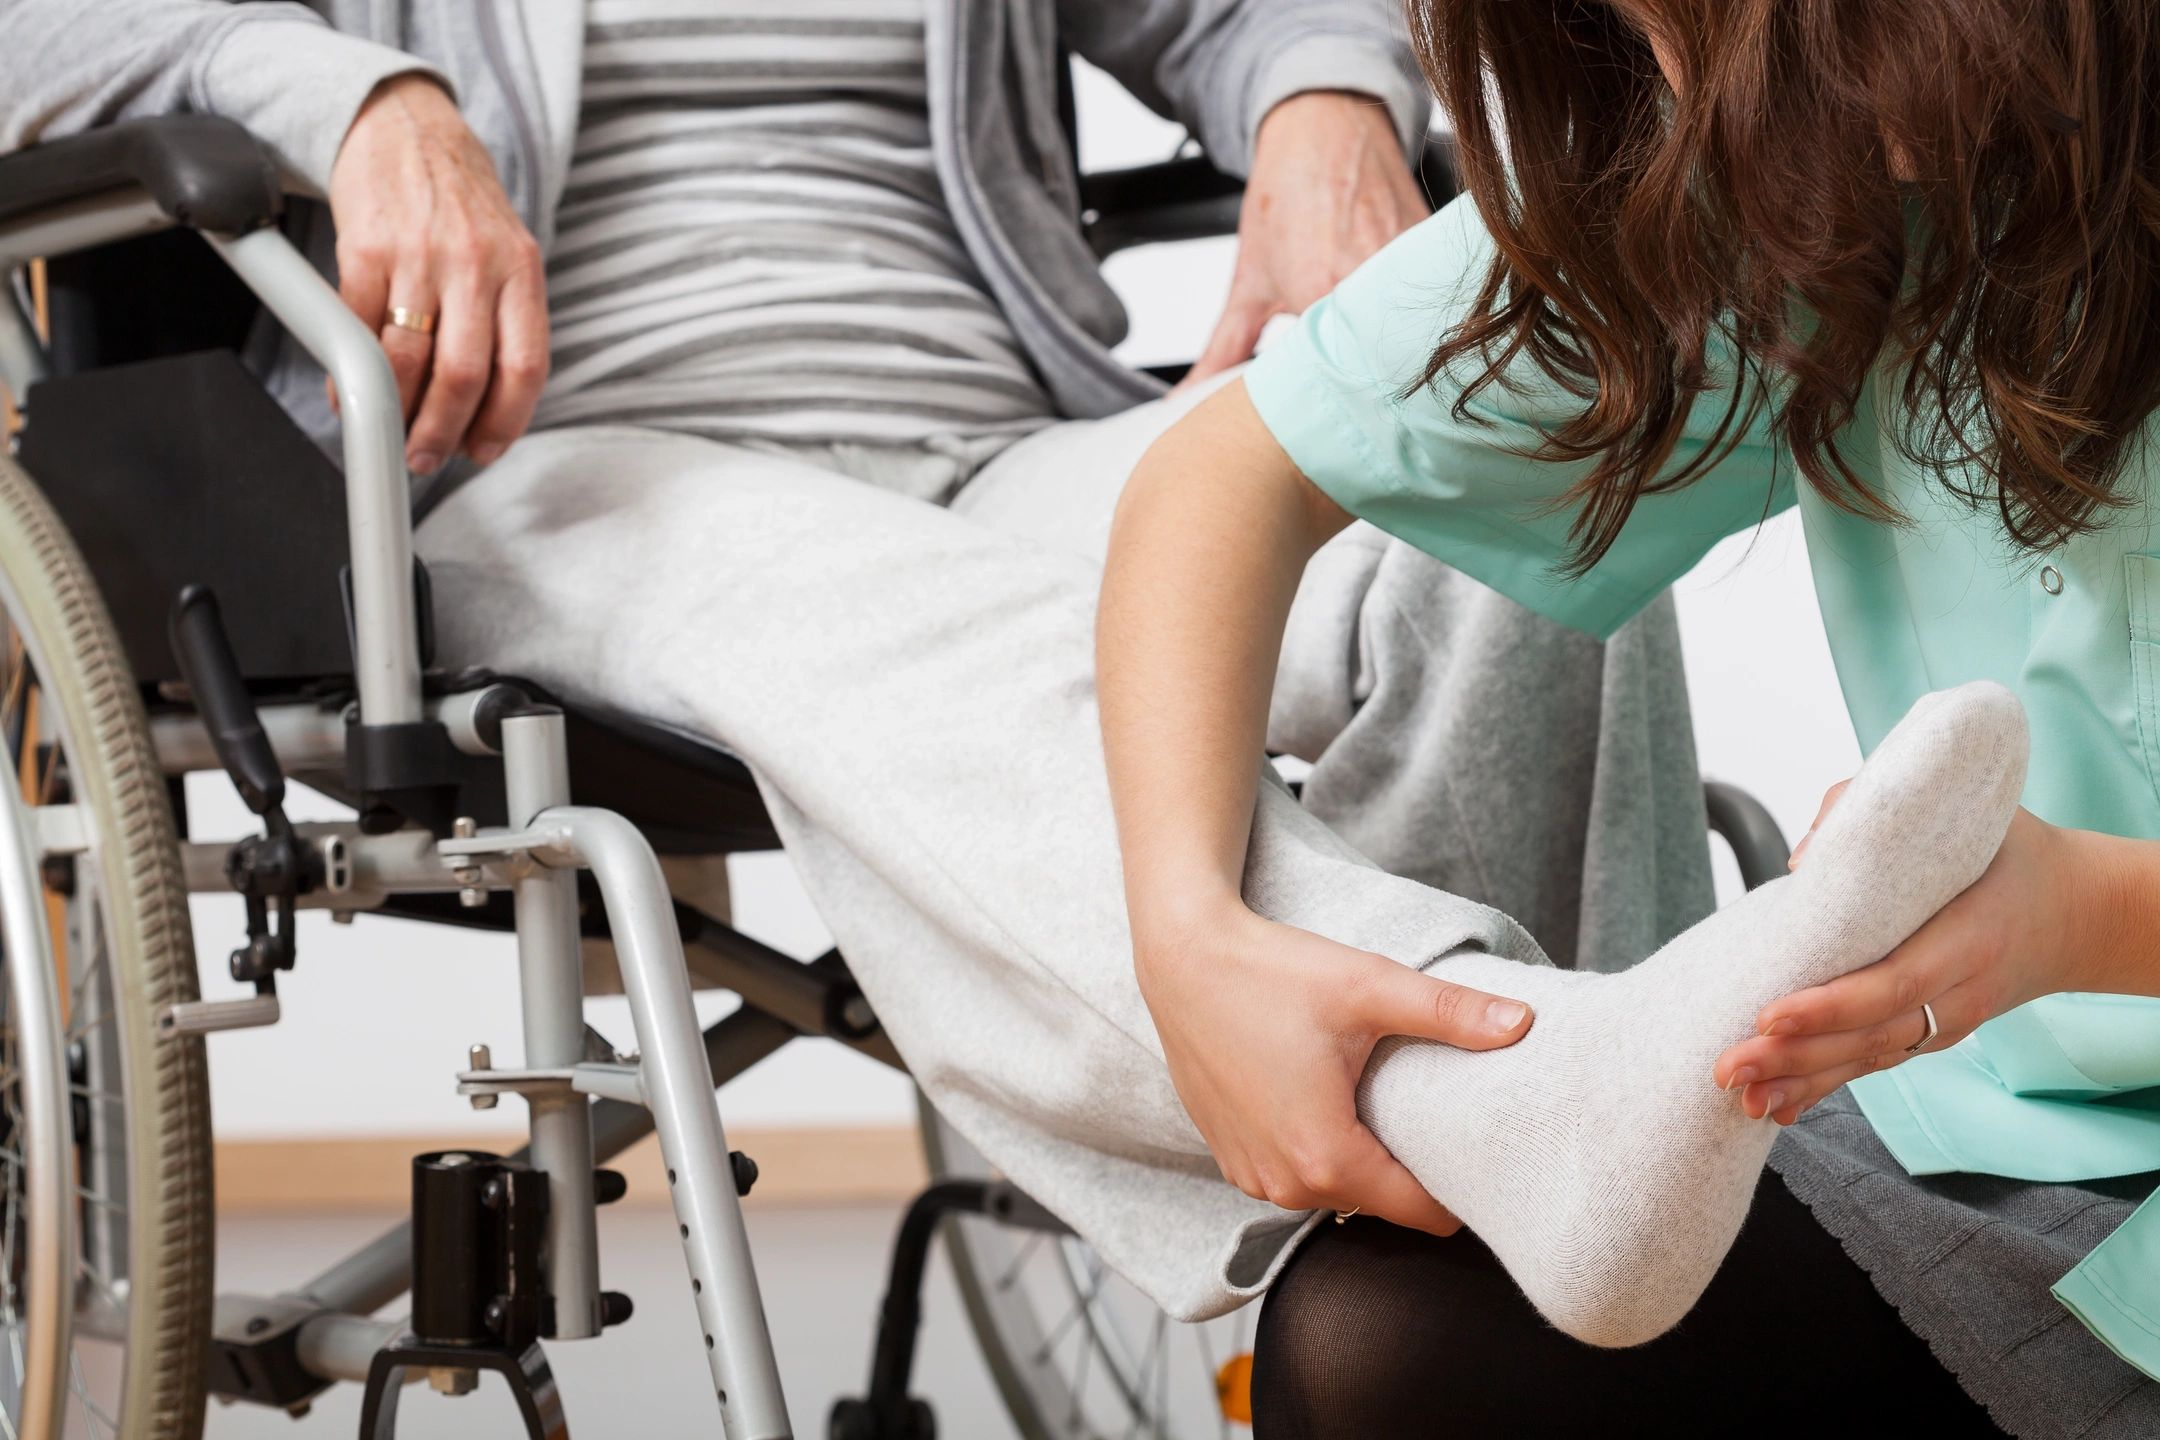 Schedule a physical therapy appointment